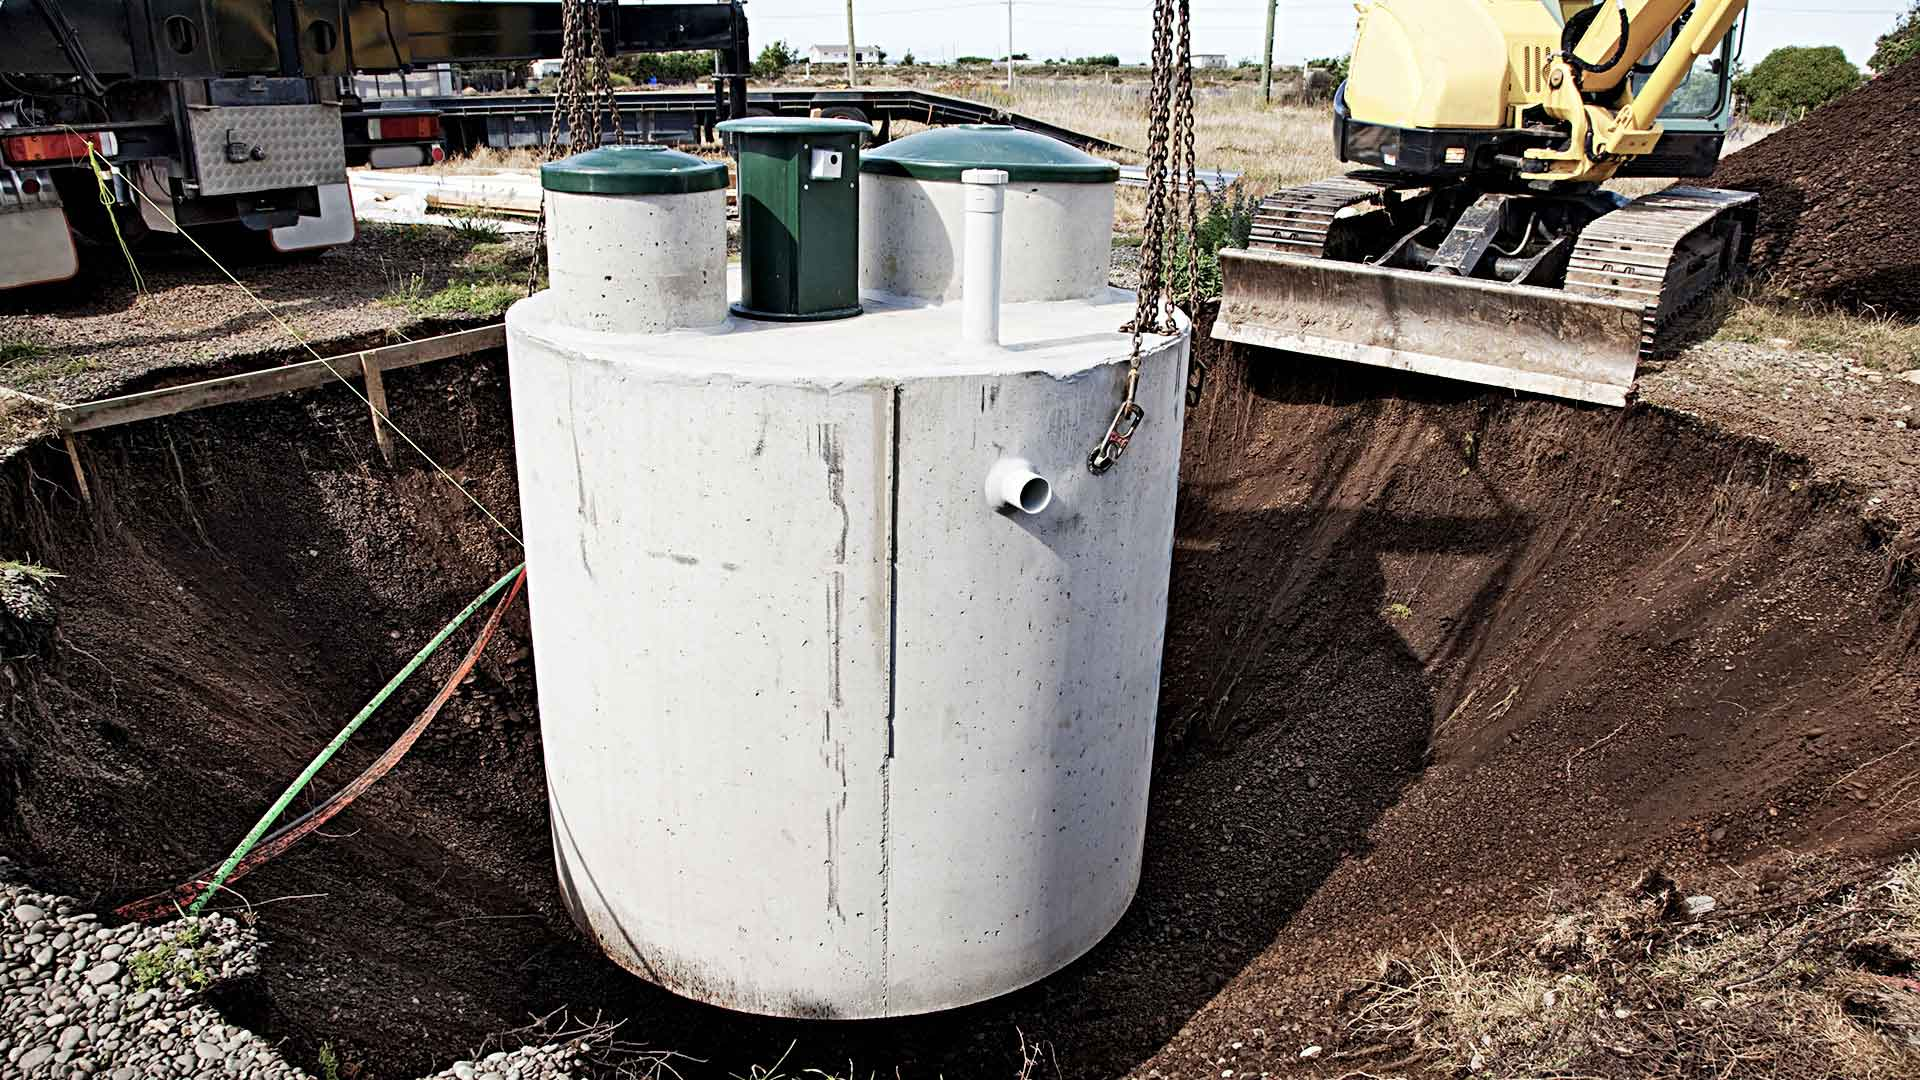 Orange Grove Septic Cleaning, Septic Tank Services and Septic Tank Pumping